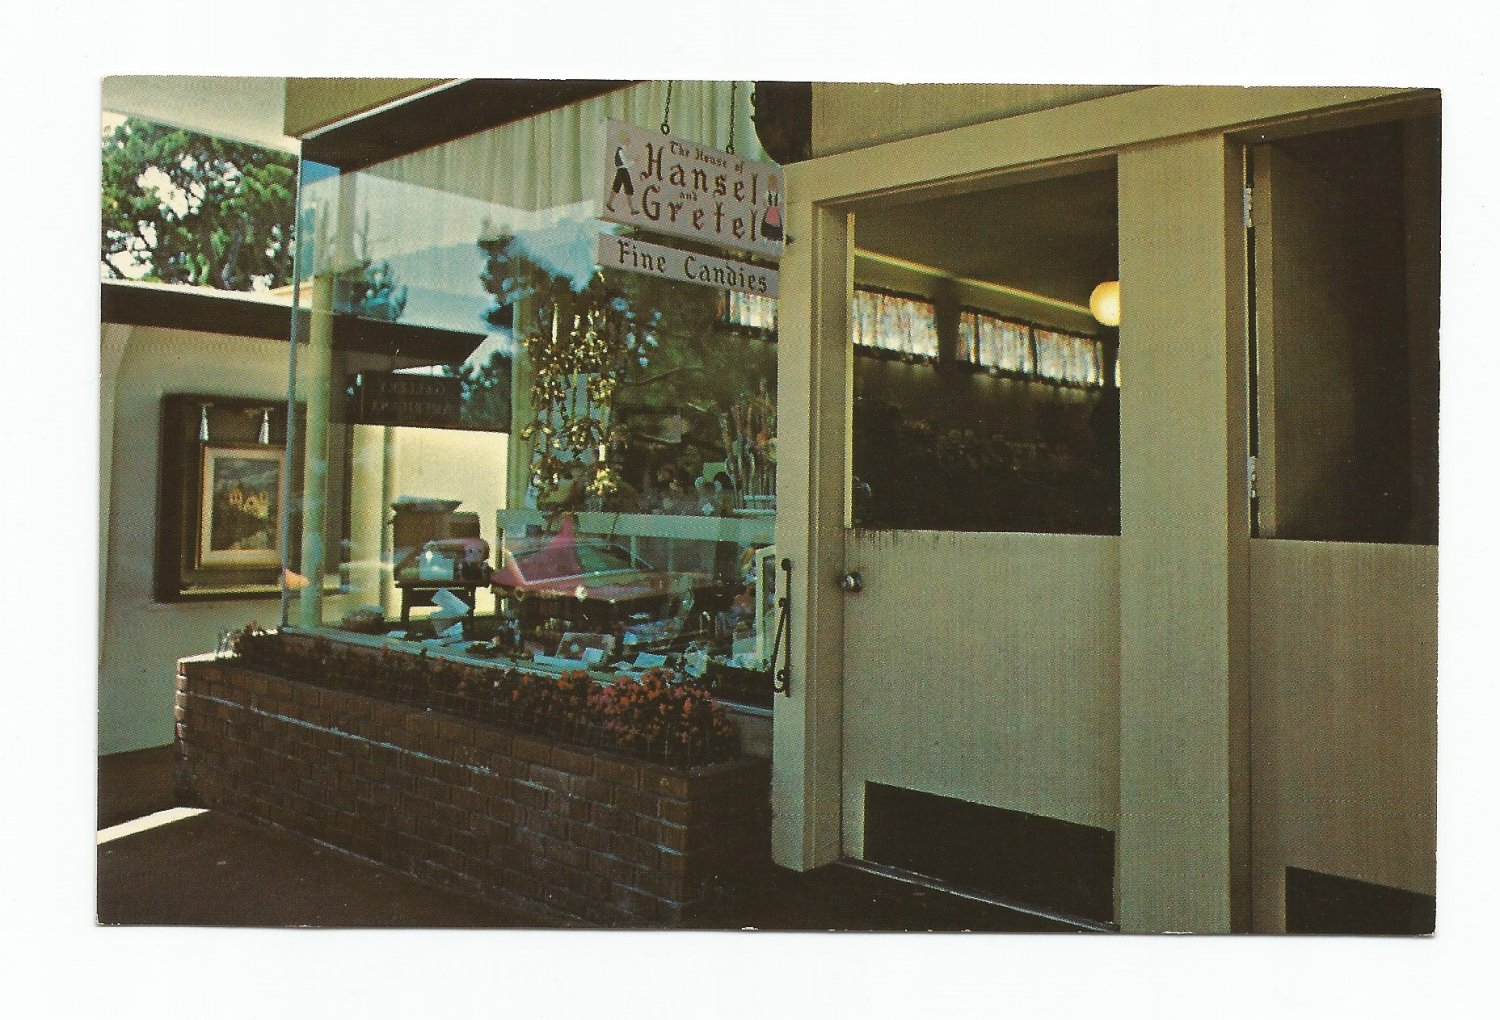 Hansel and Gretel Candy Shop Carmel-by-the-Sea Postcard